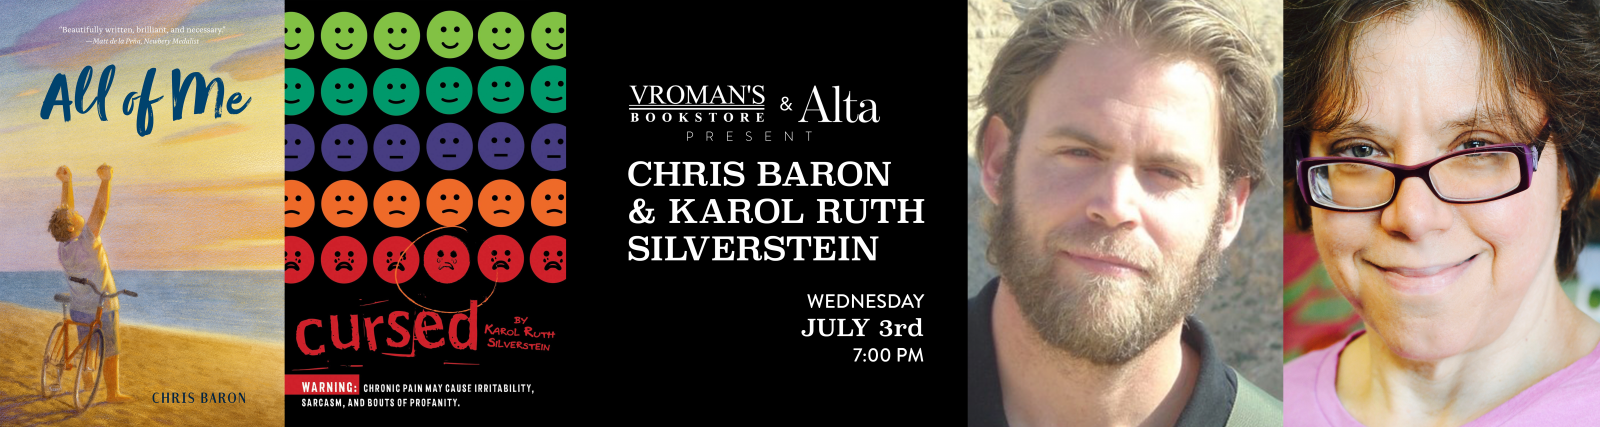 karol ruth silverstein and chris baron book signing July 3rd